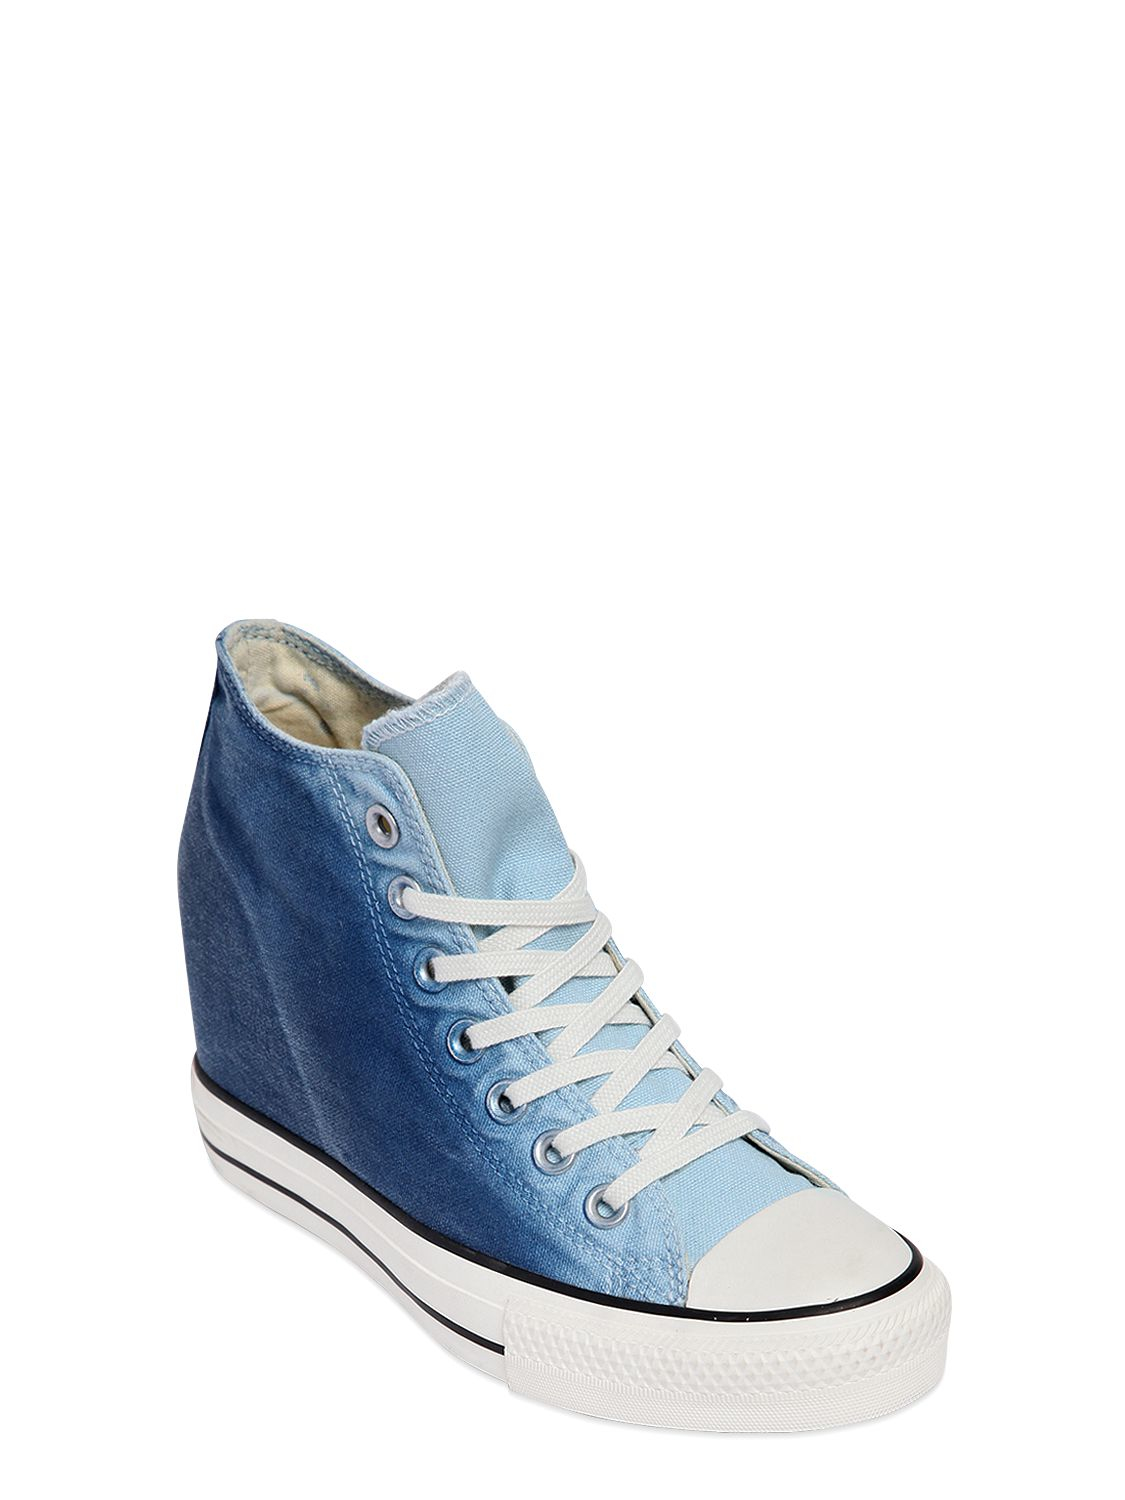 905ebdfc9bb283 Converse 80mm Star Mid Lux Denim Wedge Sneakers in Blue - Lyst